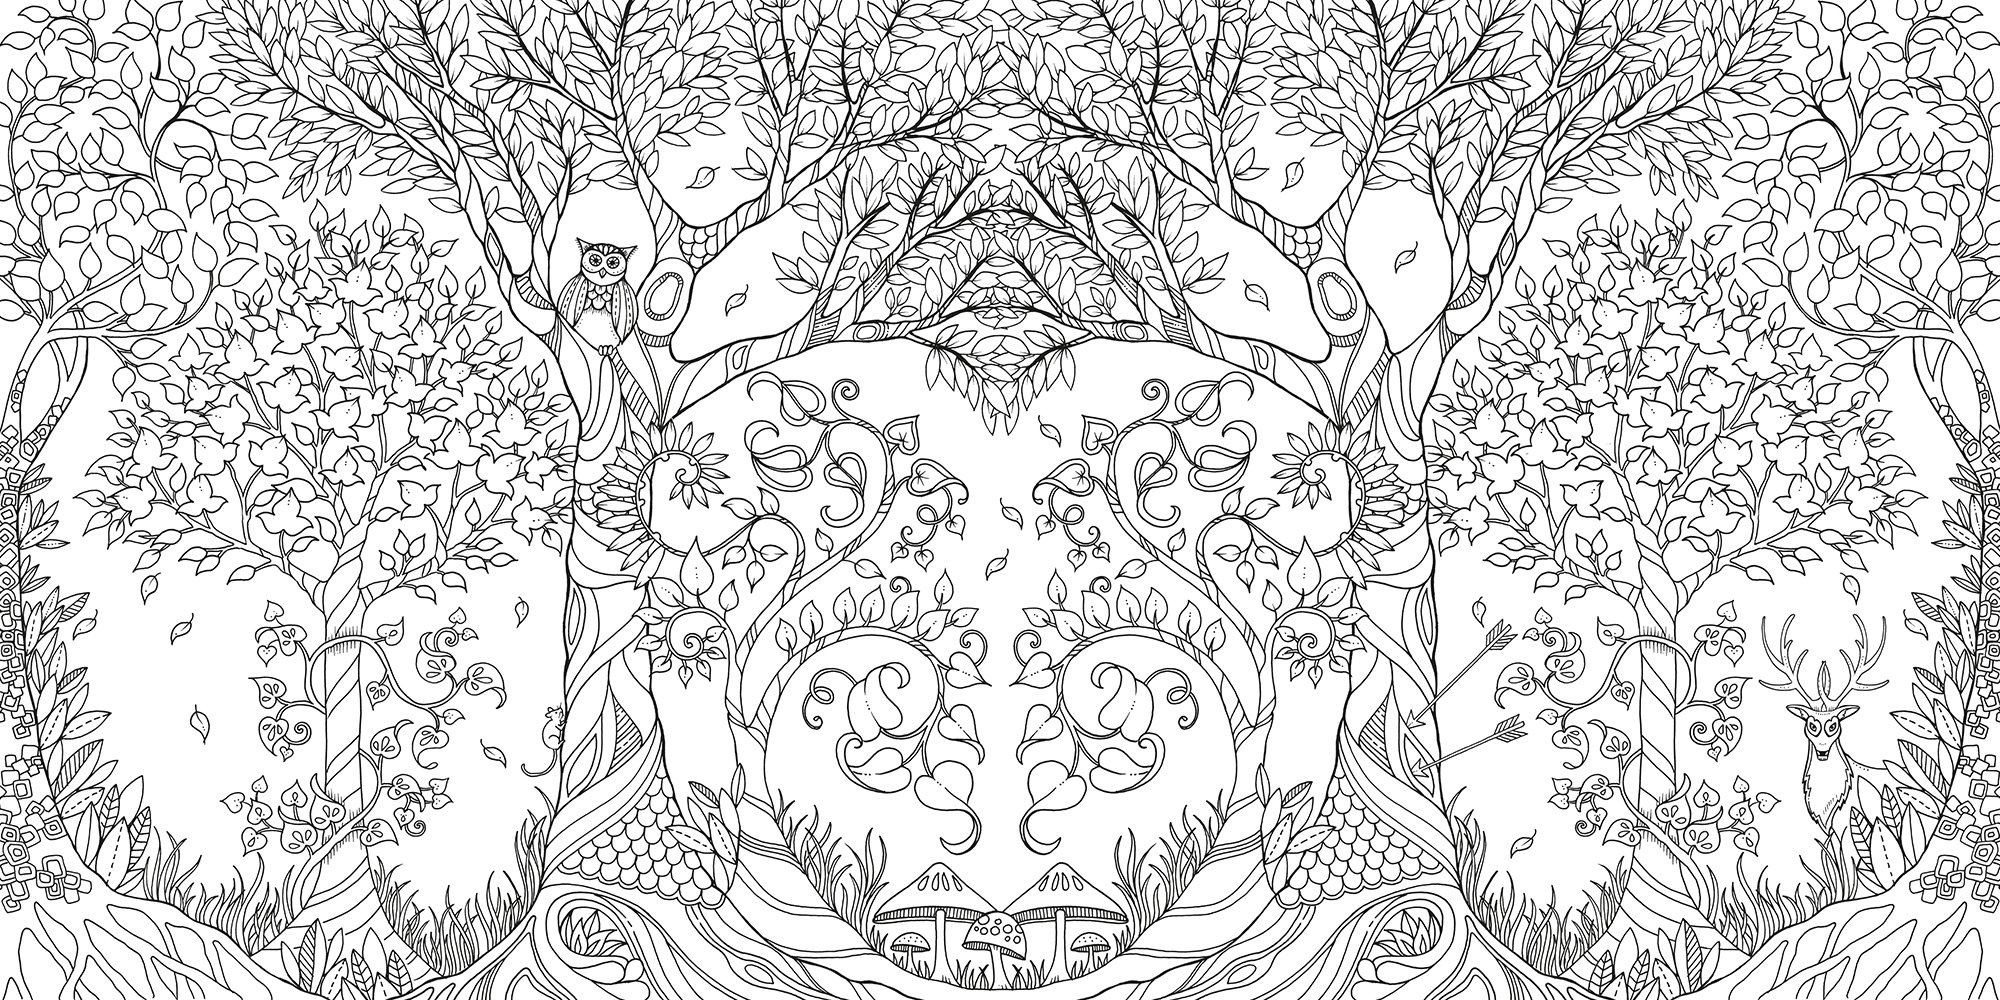 coloring books for adults - Coloring Book For Grown Ups